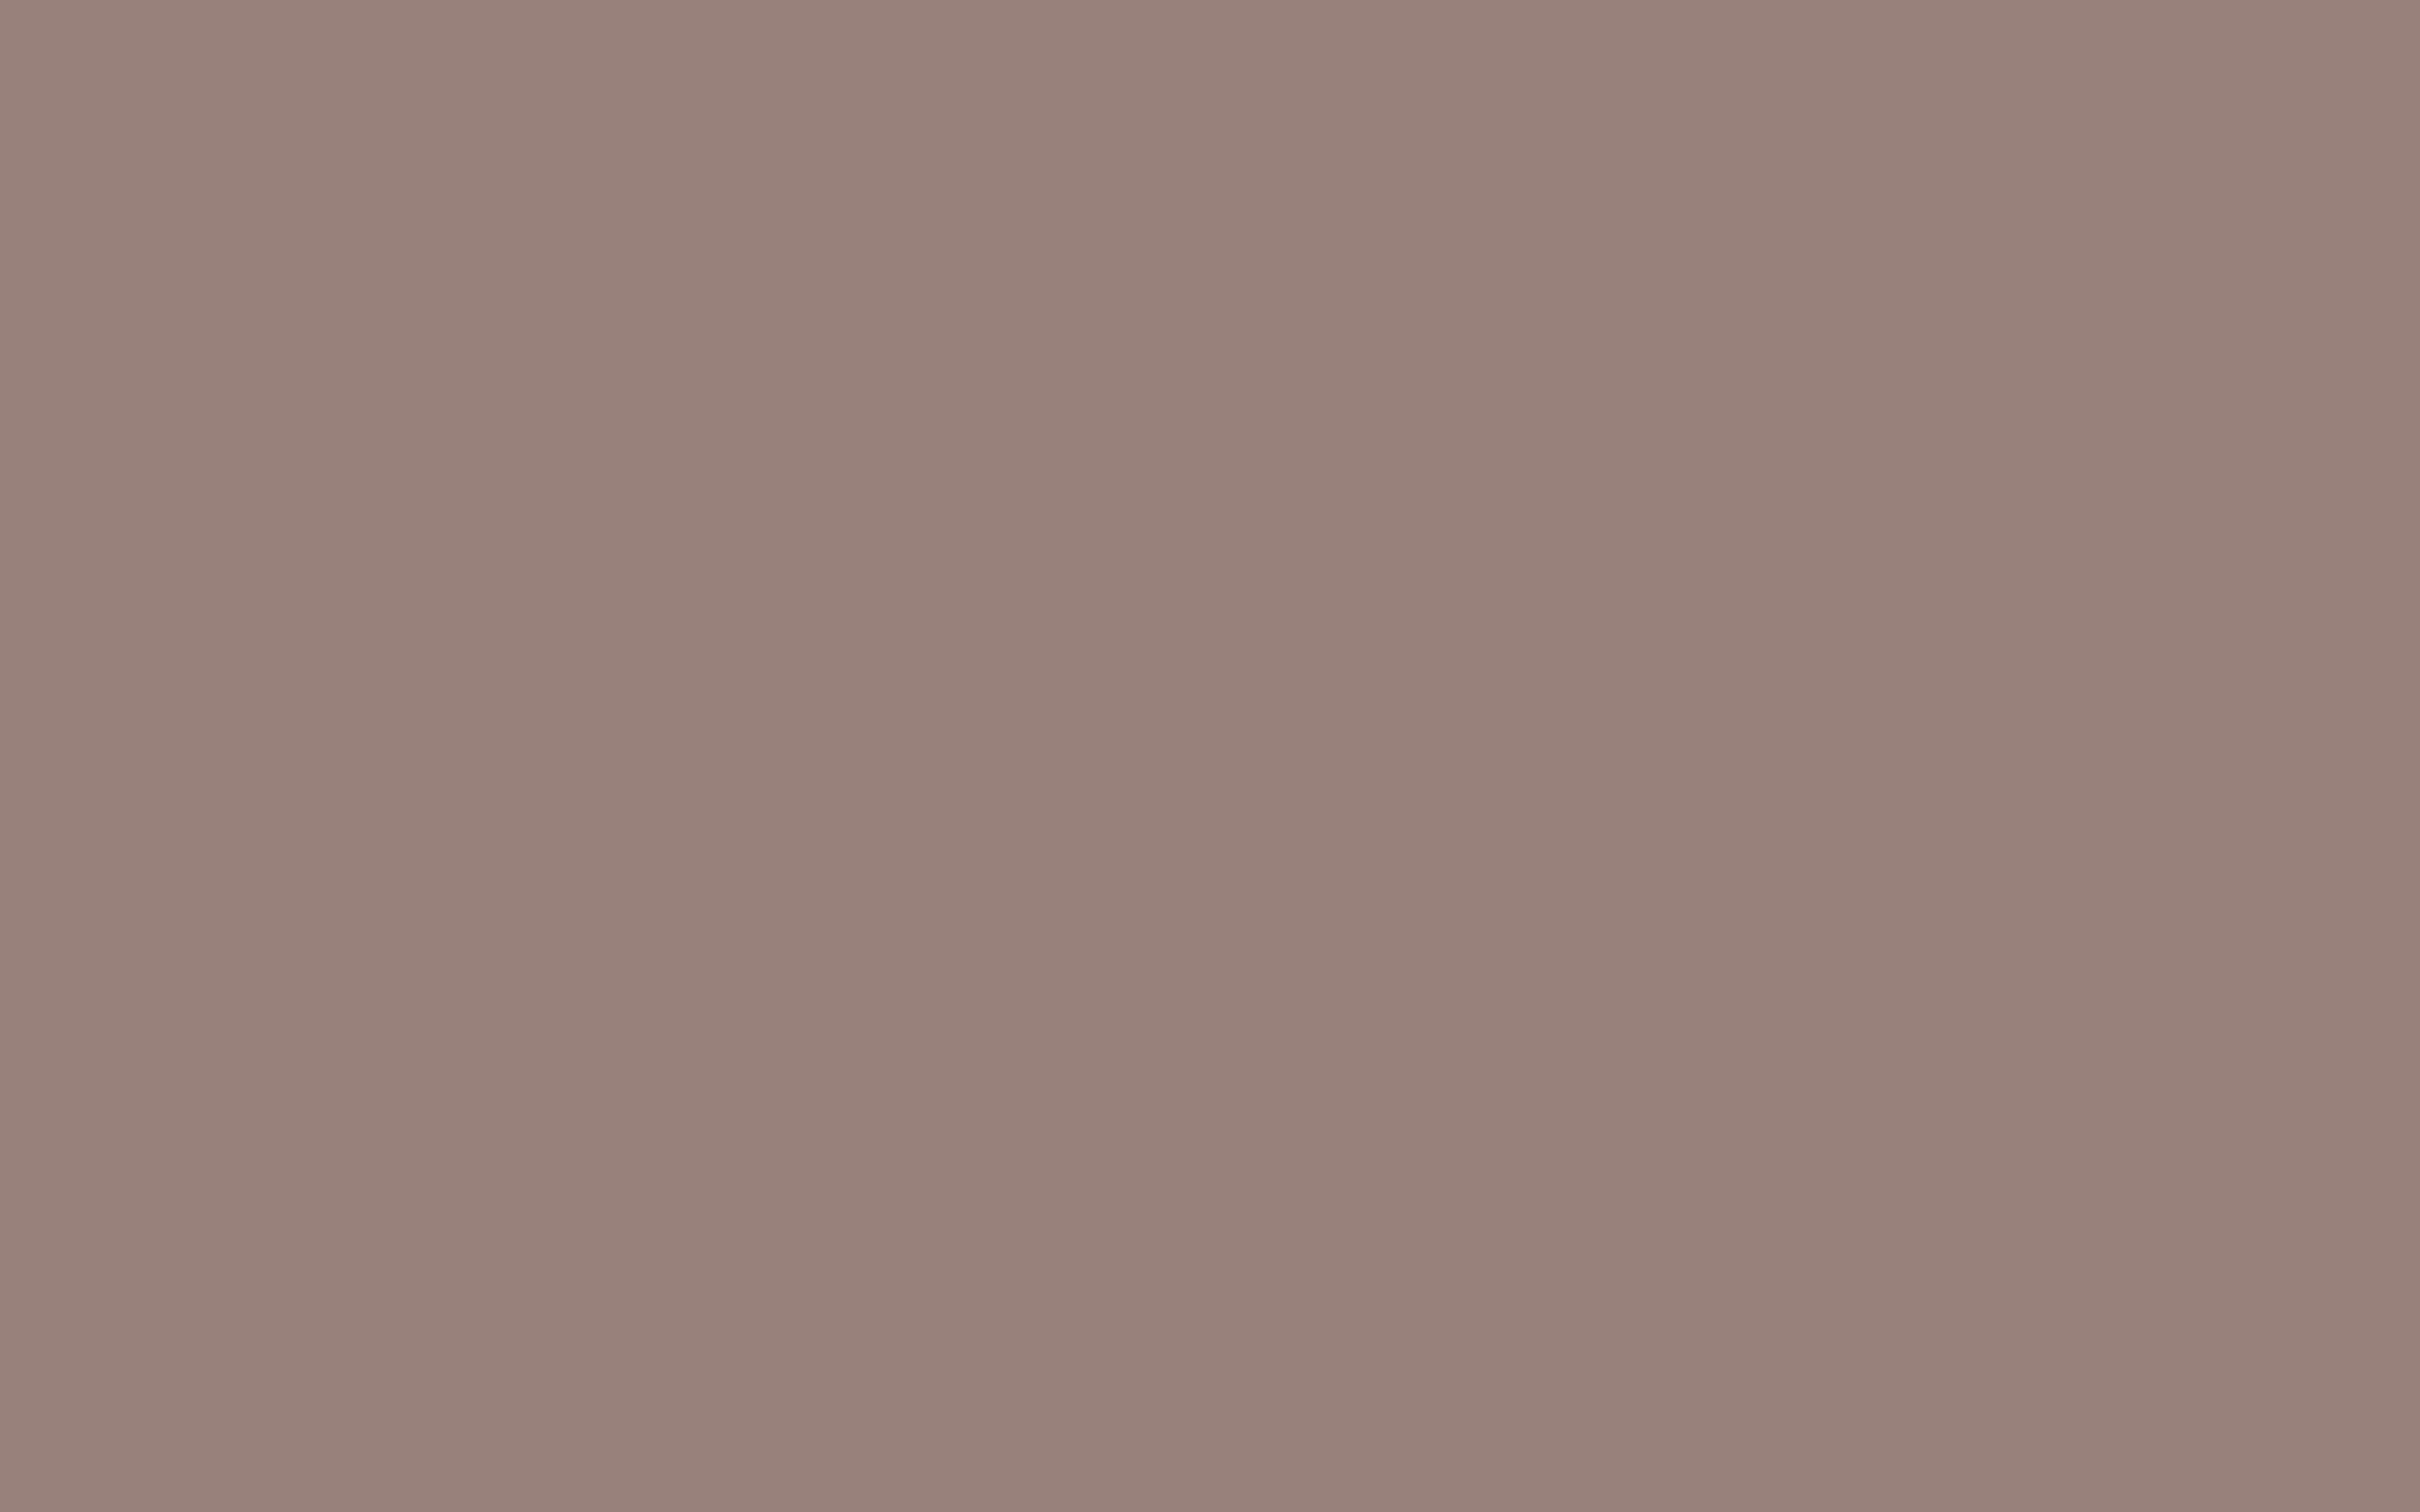 2560x1600 Cinereous Solid Color Background